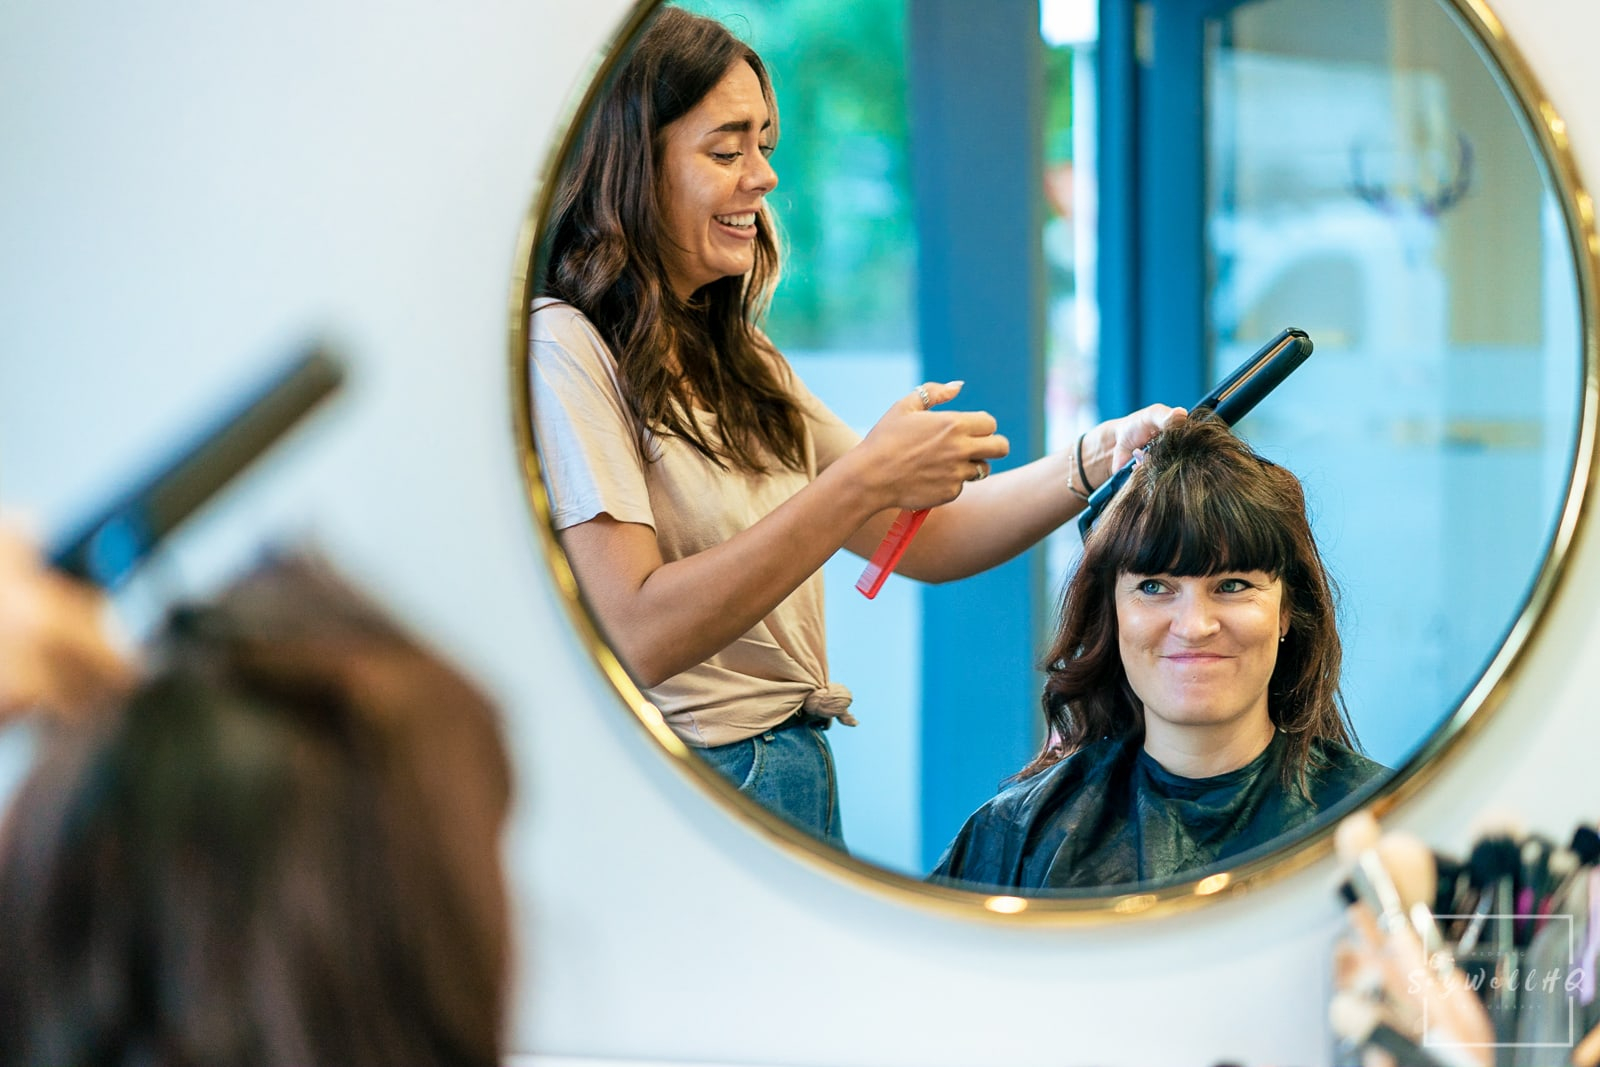 Buxton Wedding Photography - Bride and Bridemaids getting ready at a local hairdressers before the Buxton Church Wedding